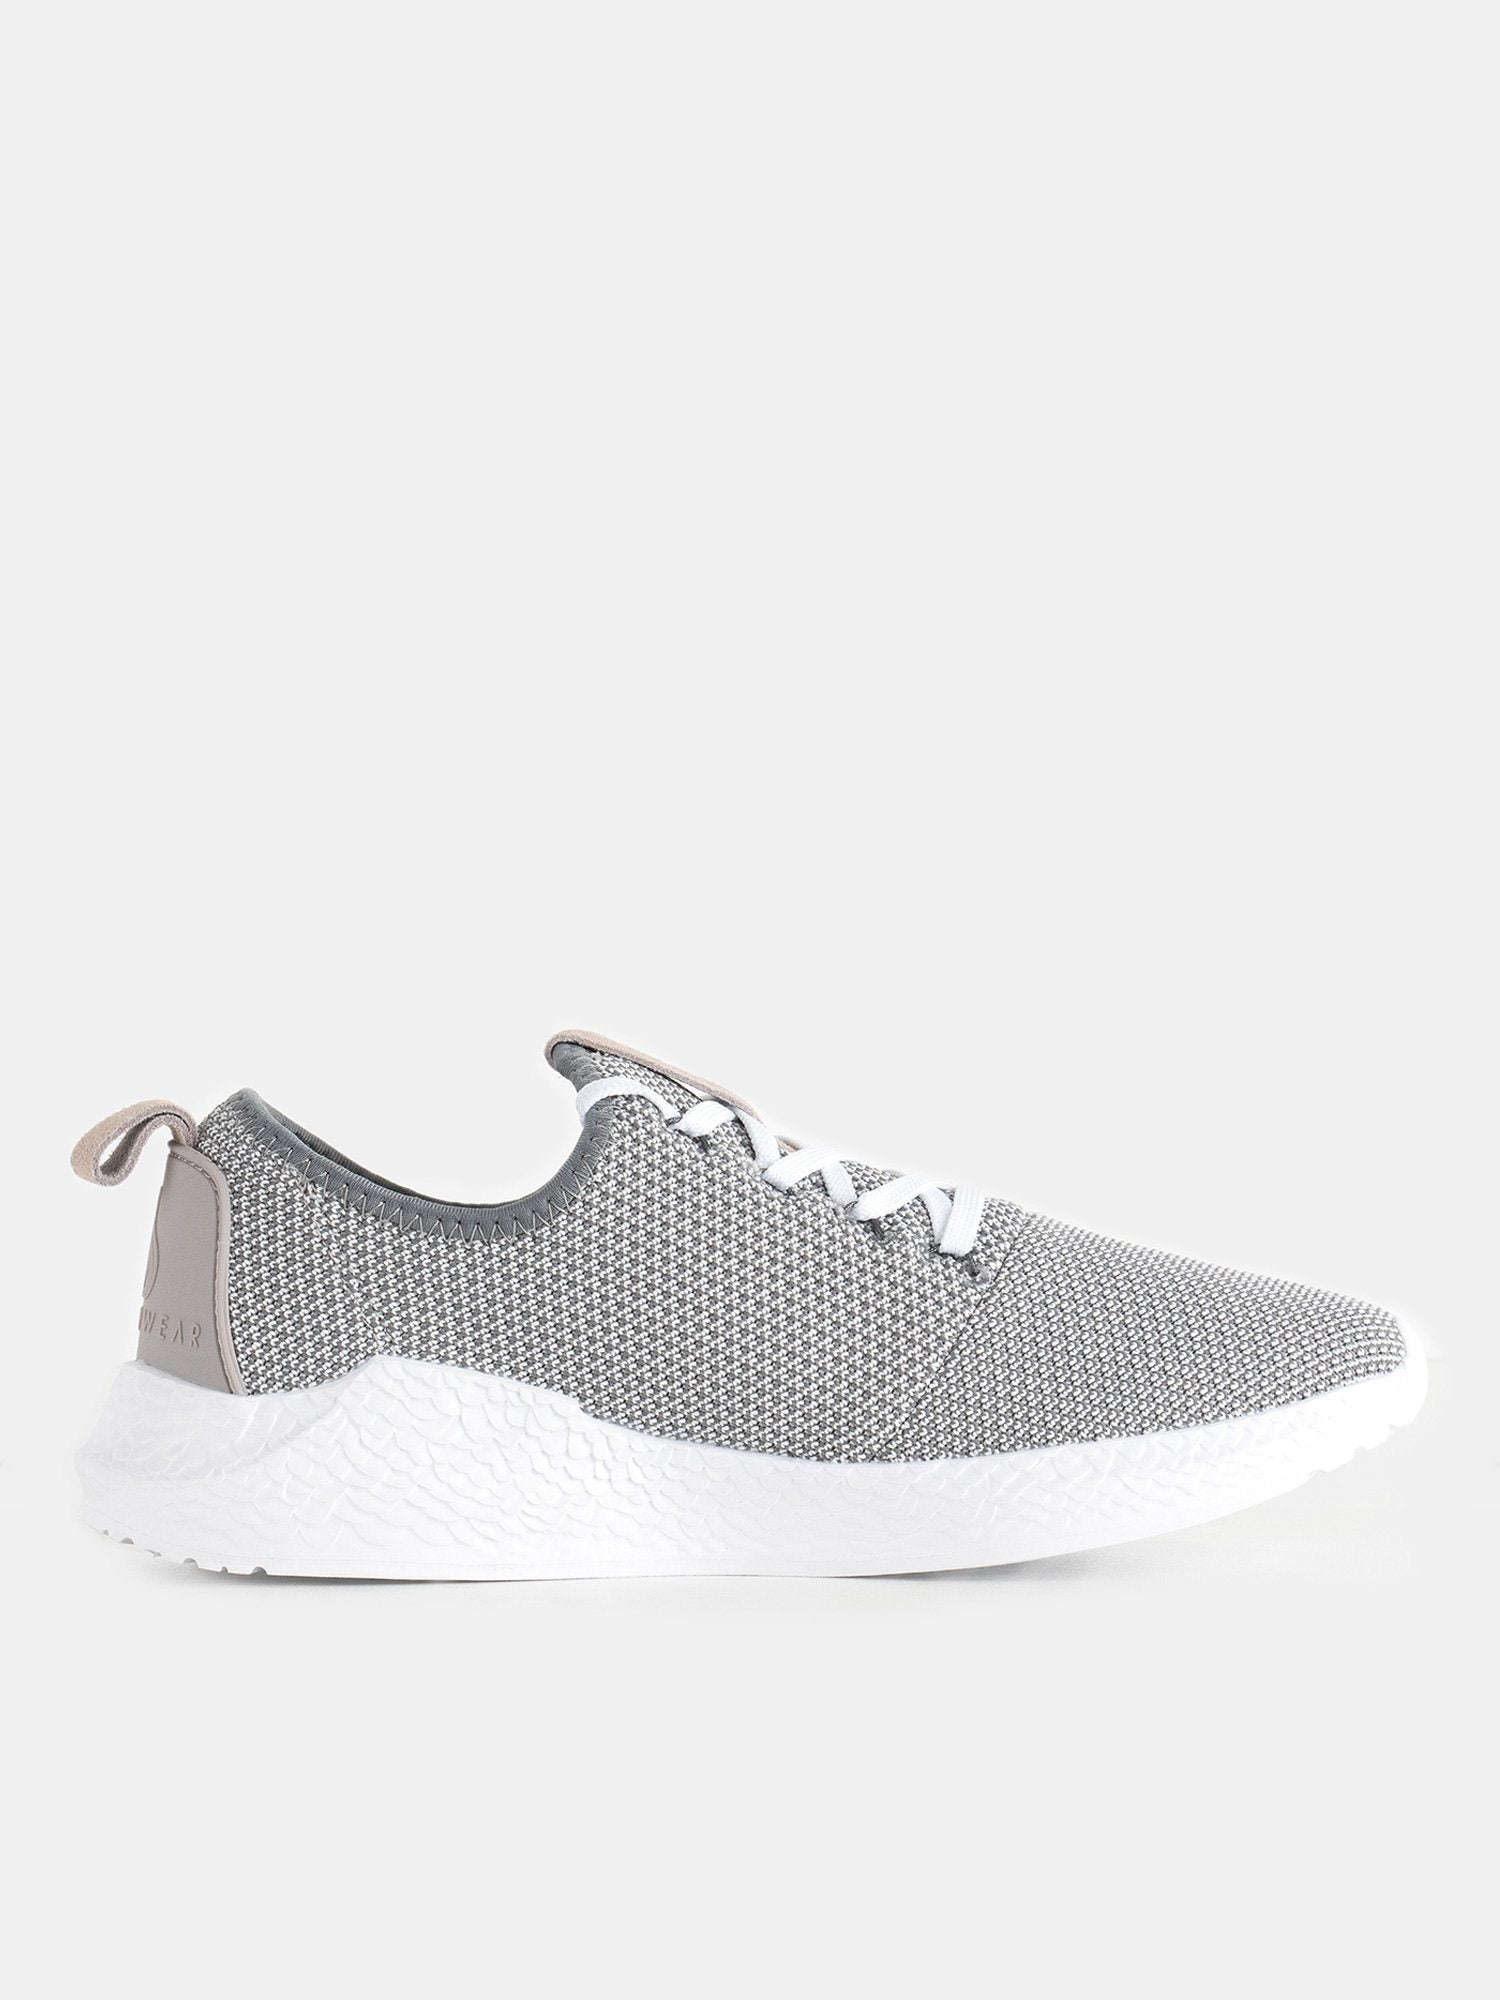 Ryder Wear Power Trainers - Grey